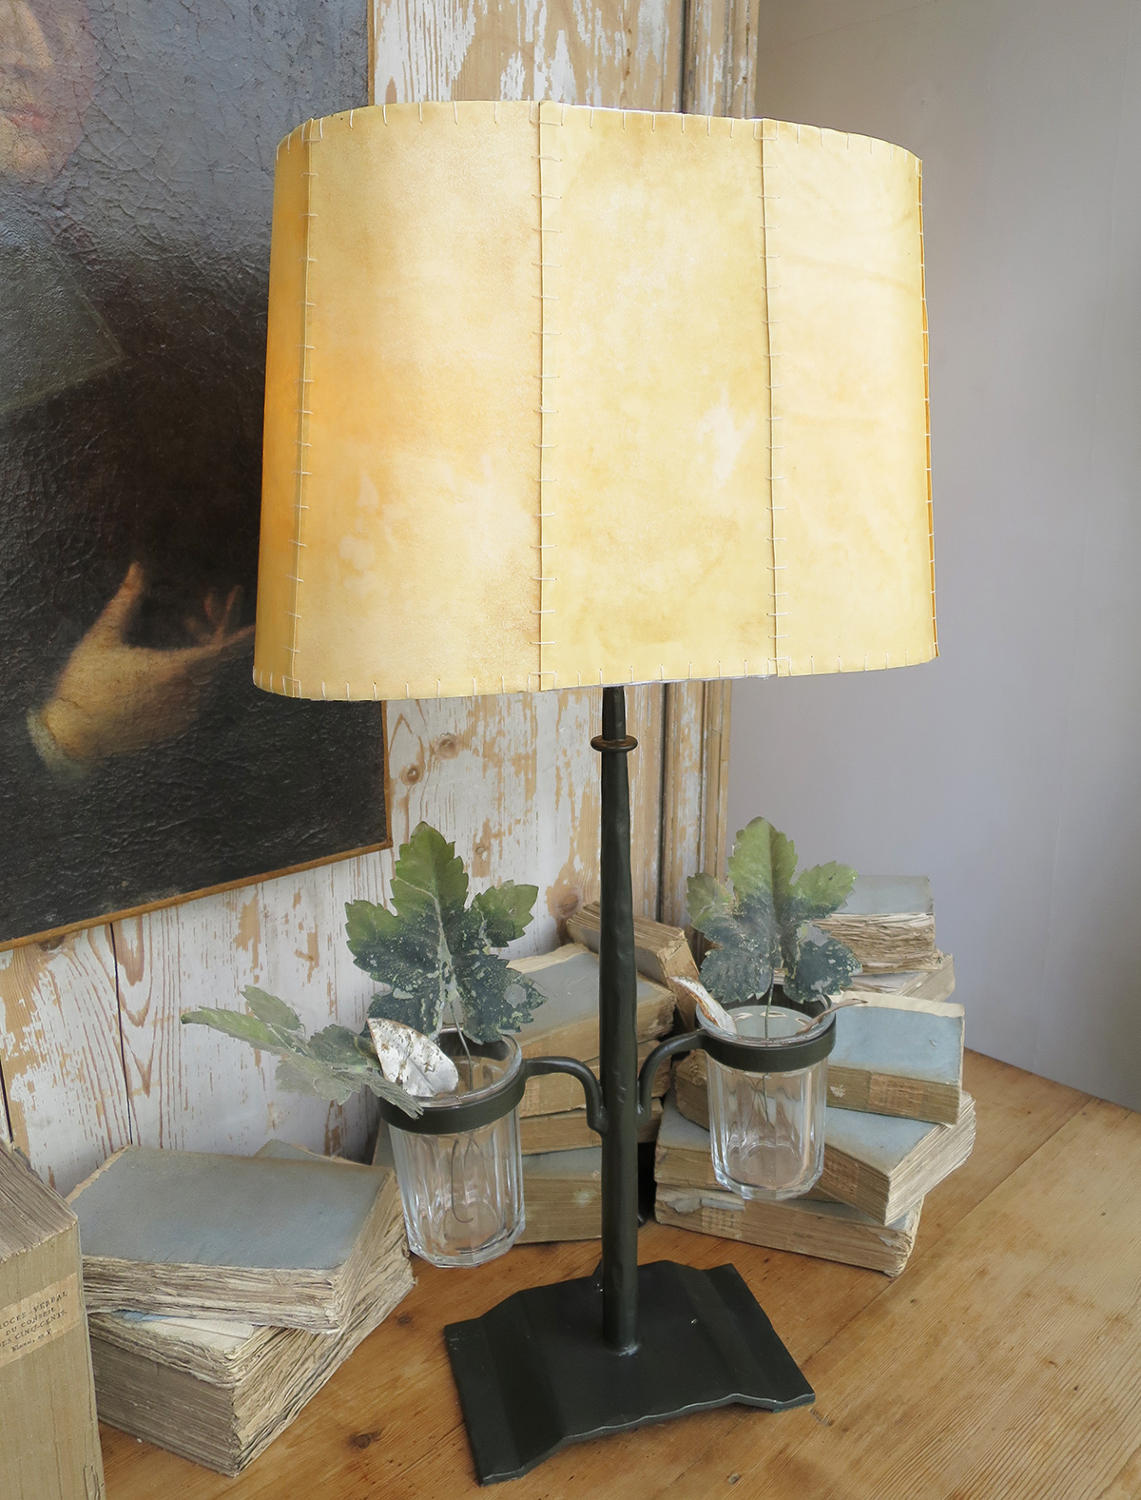 Wrought Iron French Table Lamp with Jars